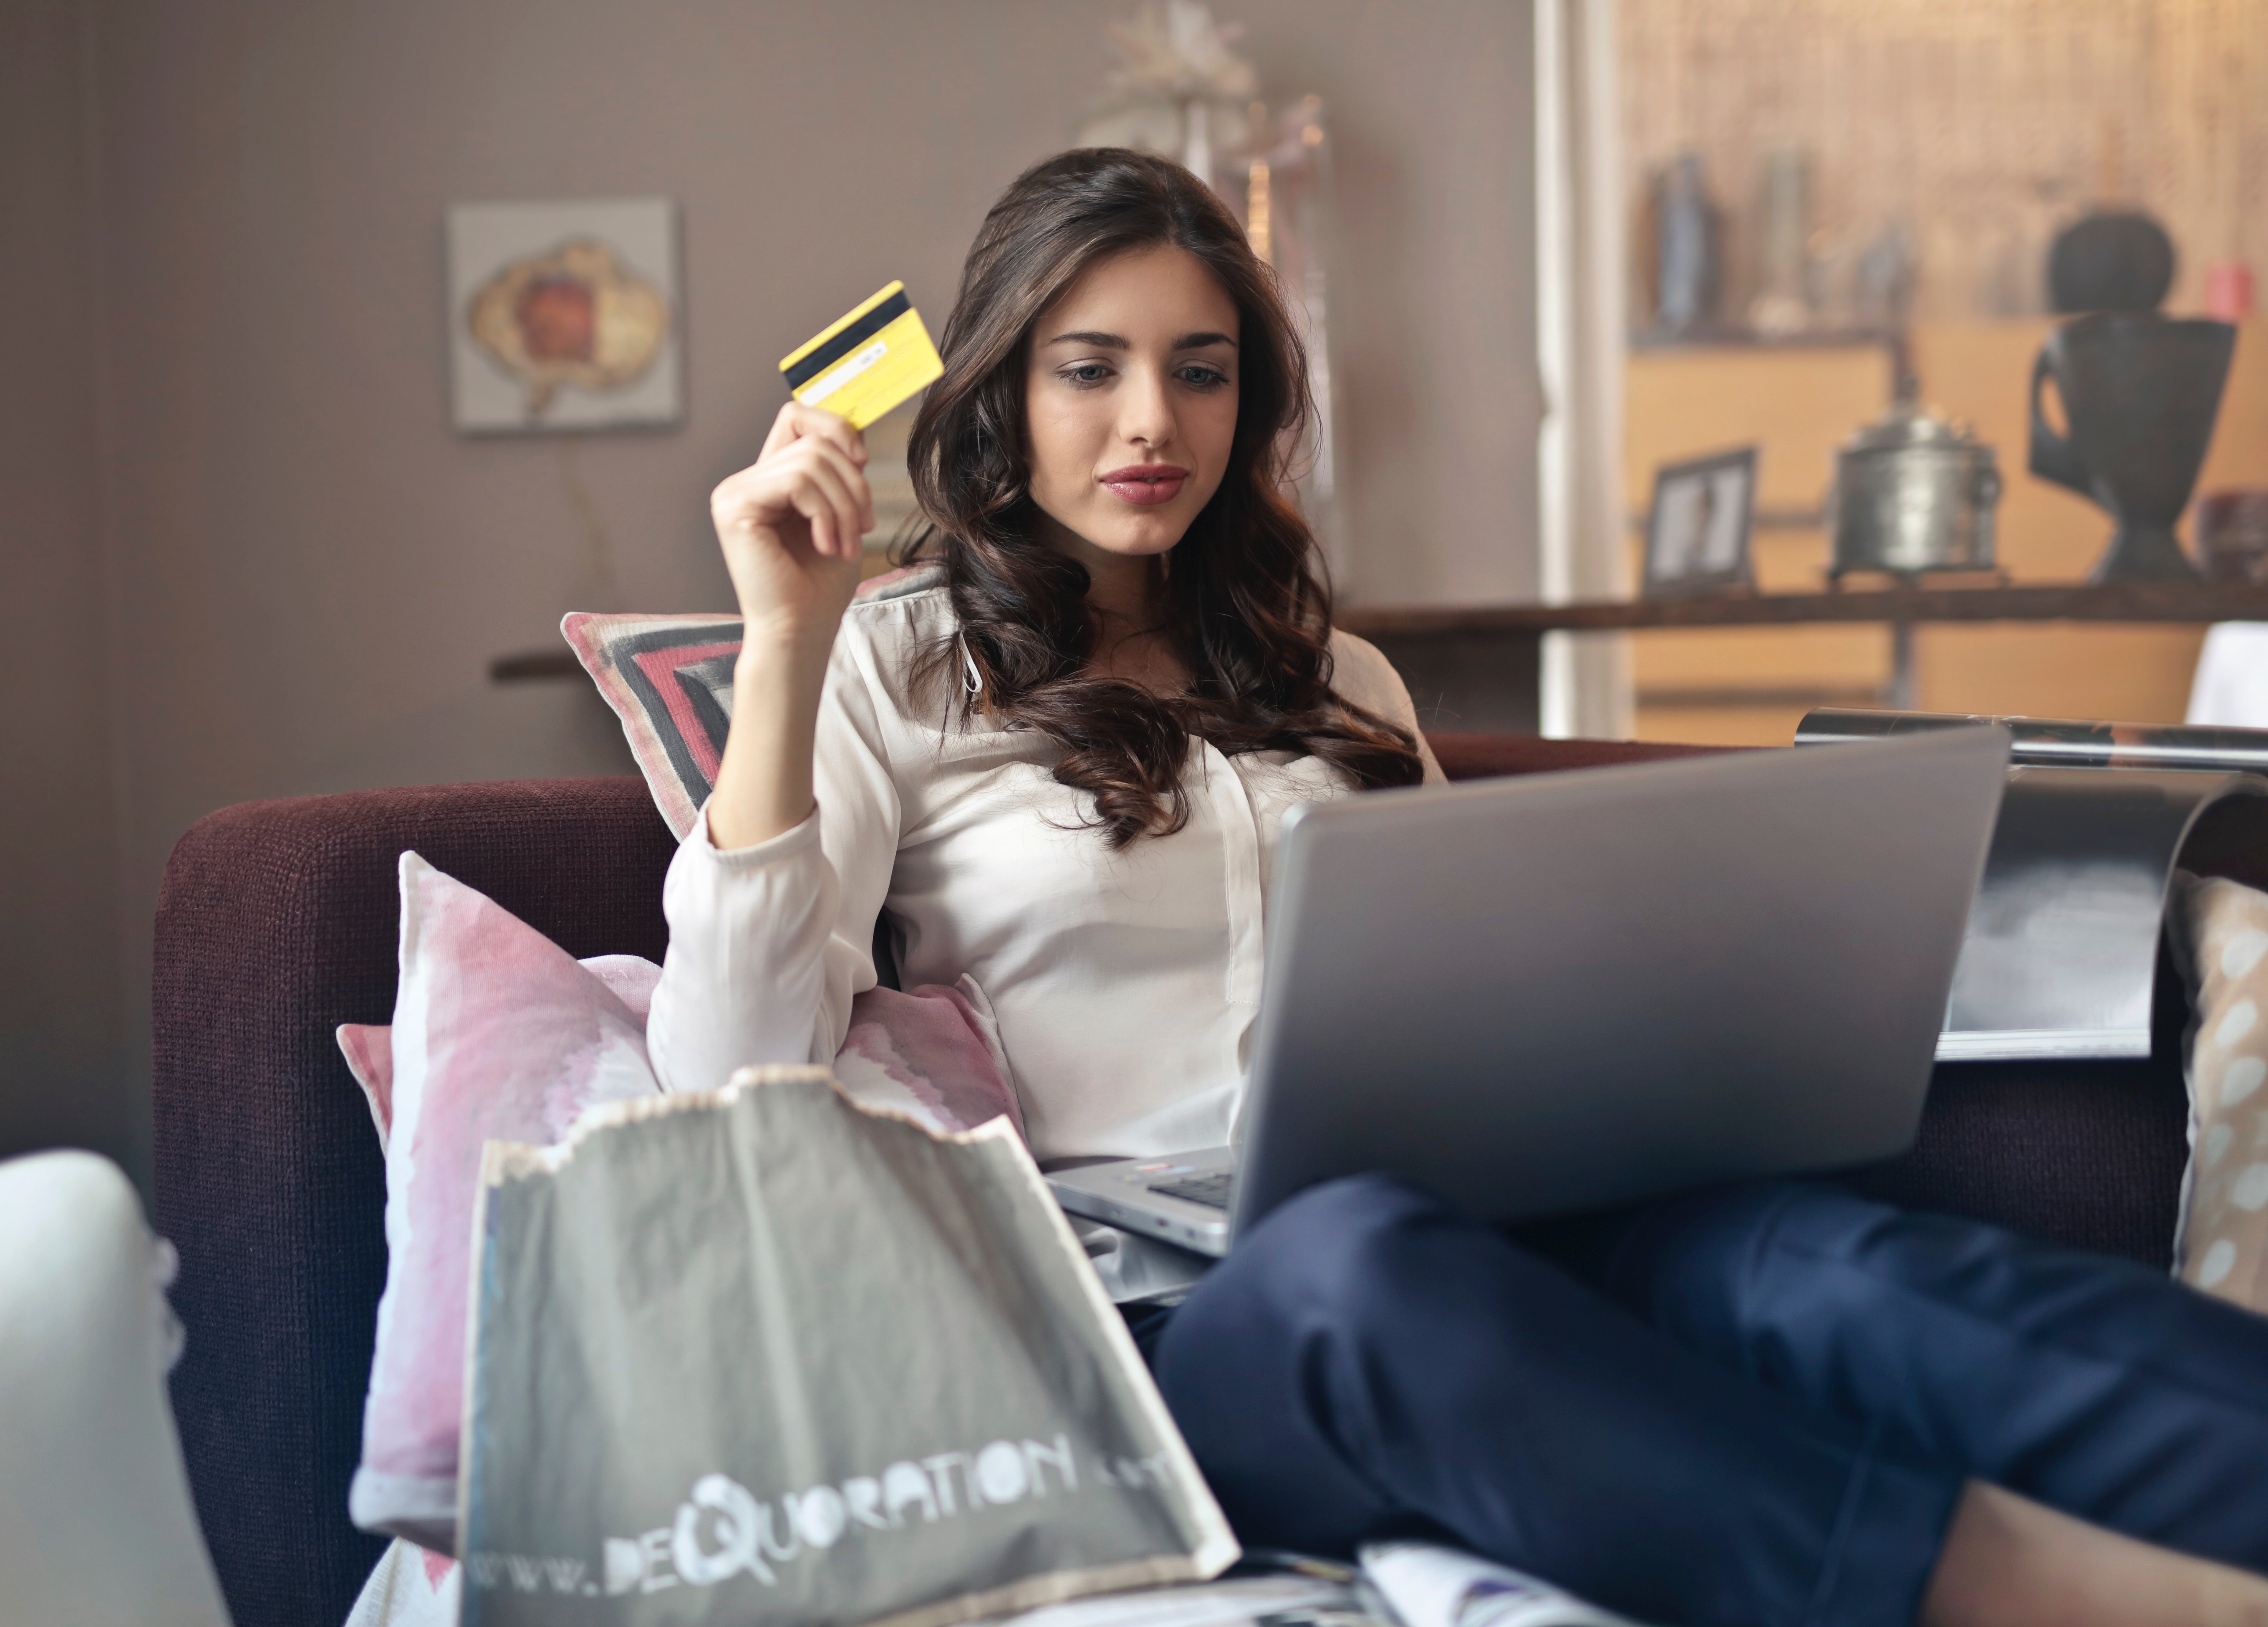 5 Causes Of Debt And How You Can Avoid Them